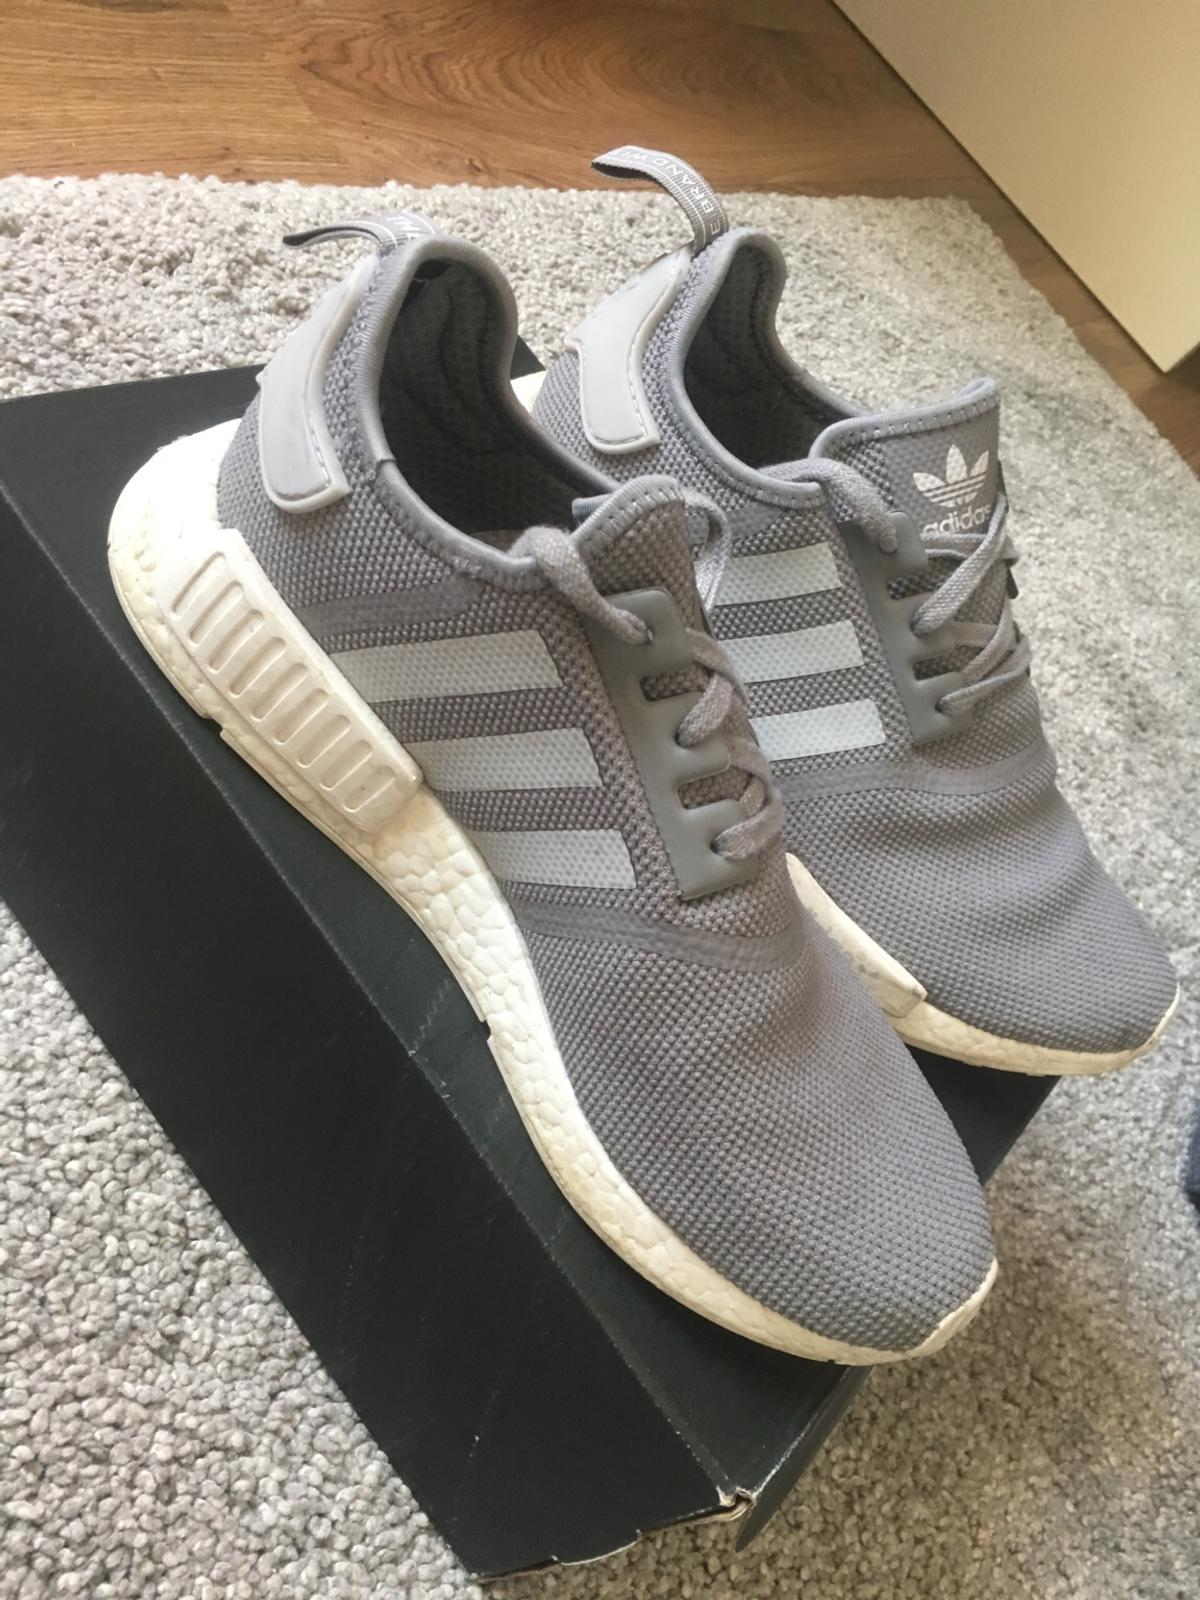 Adidas NMD R1 in 45721 Haltern am See for €1.00 for sale